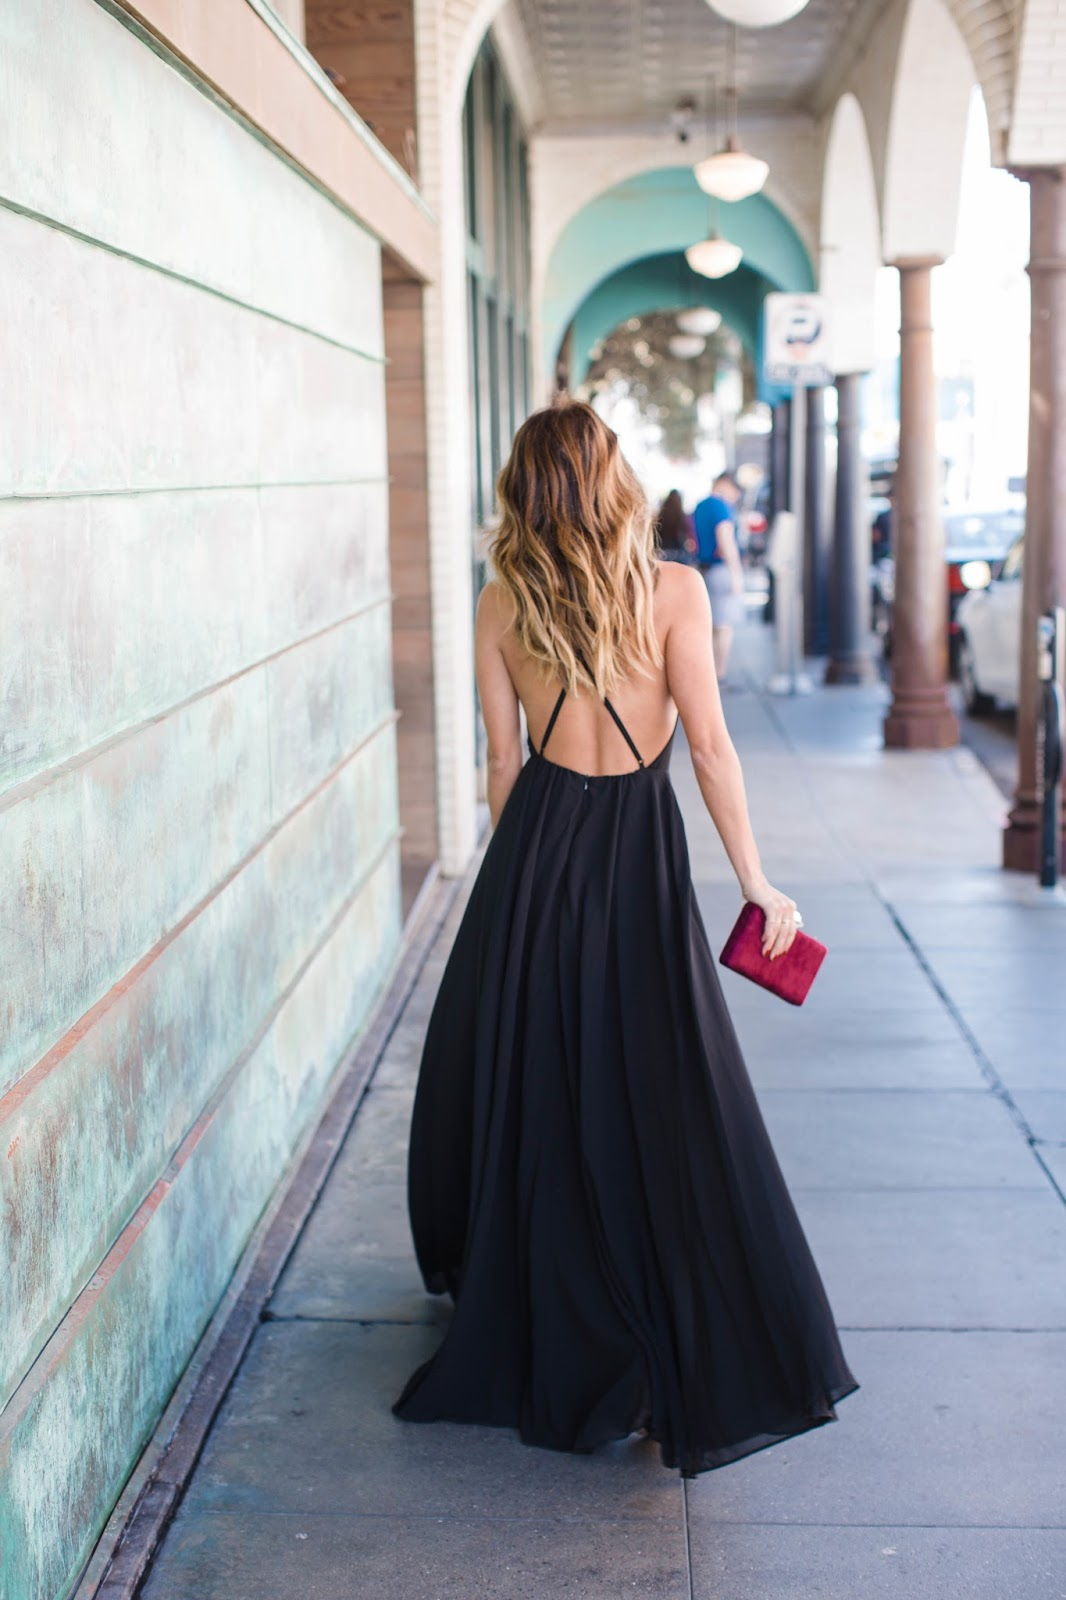 black tie maxi dress, outfit ideas for prom or black tie event, lulus black dress